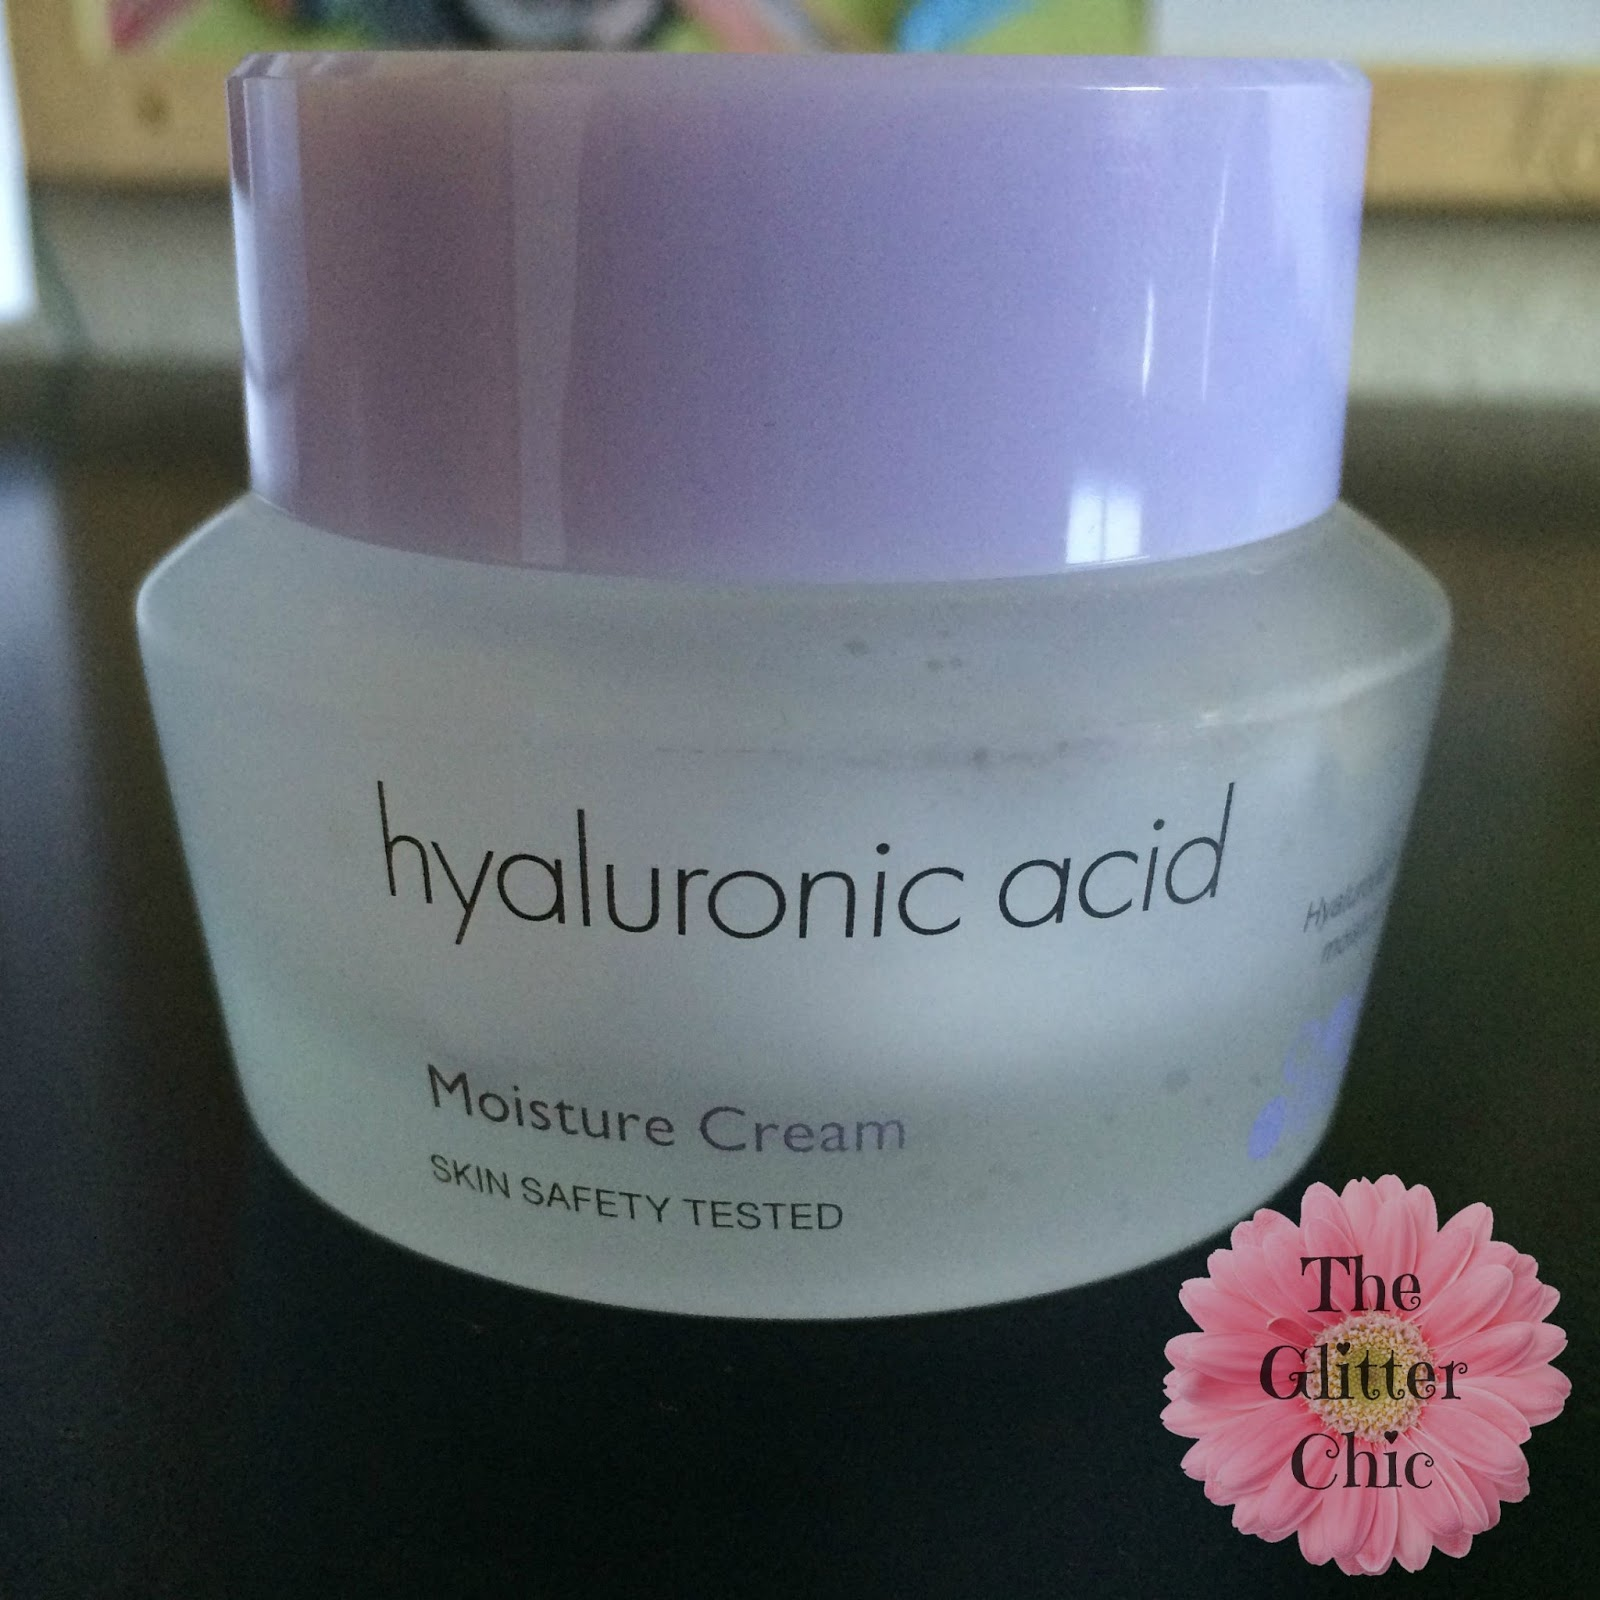 Skin cream with hyaluronic acid